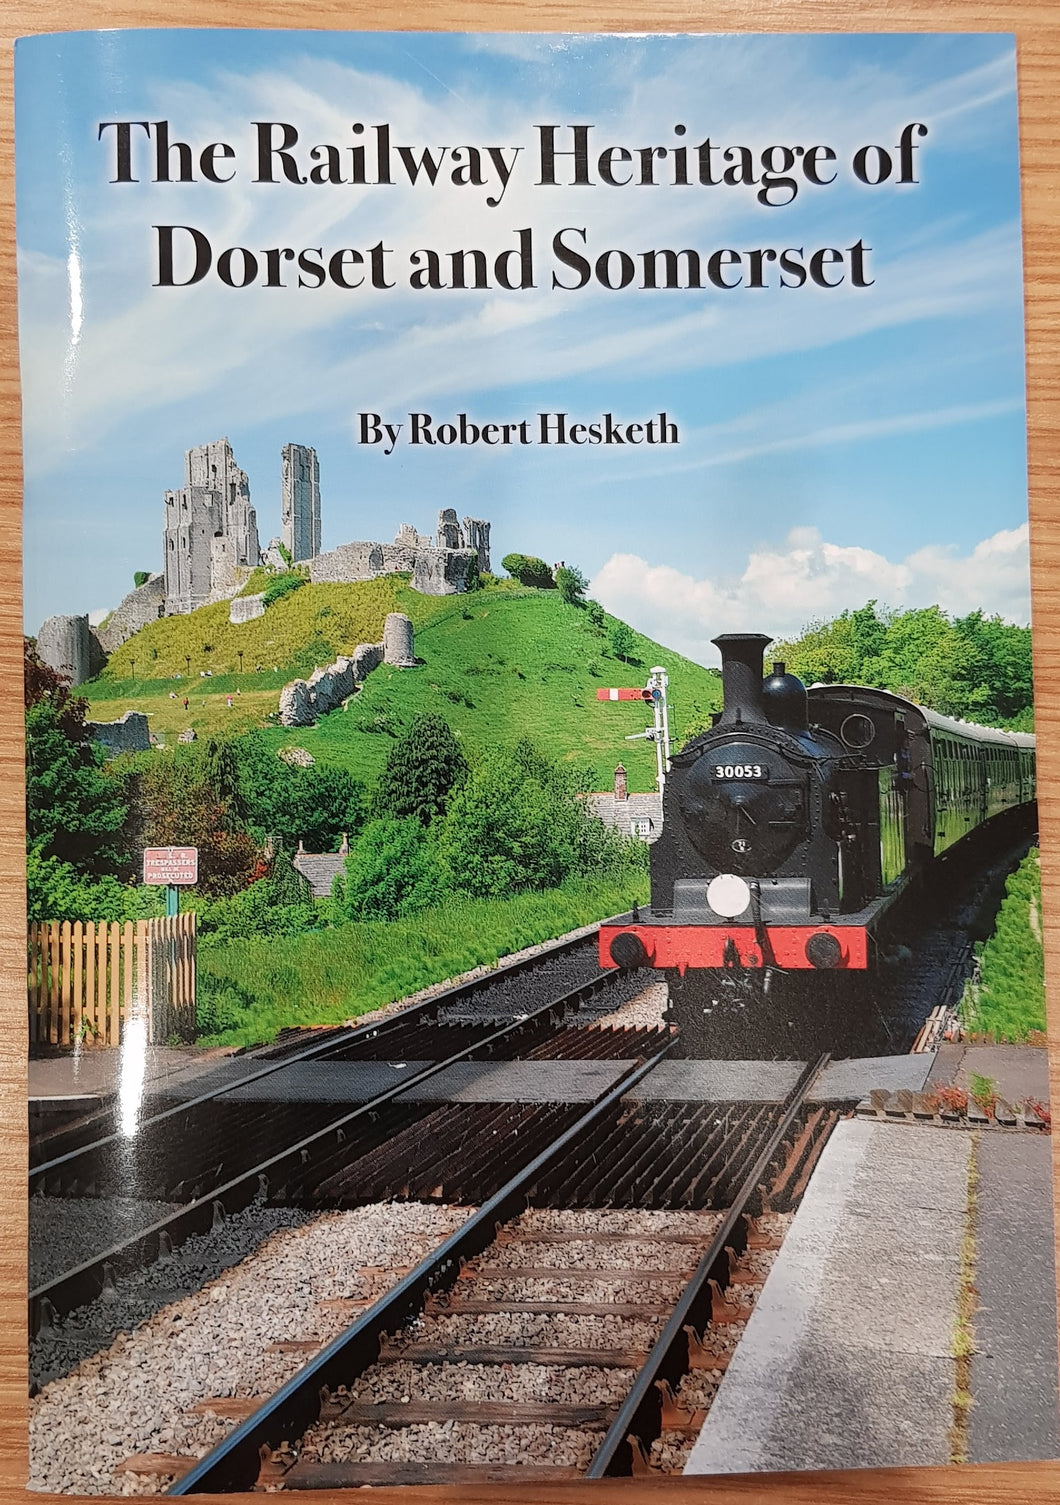 The Railway Heritage of Dorset and Somerset by Robert Hesketh